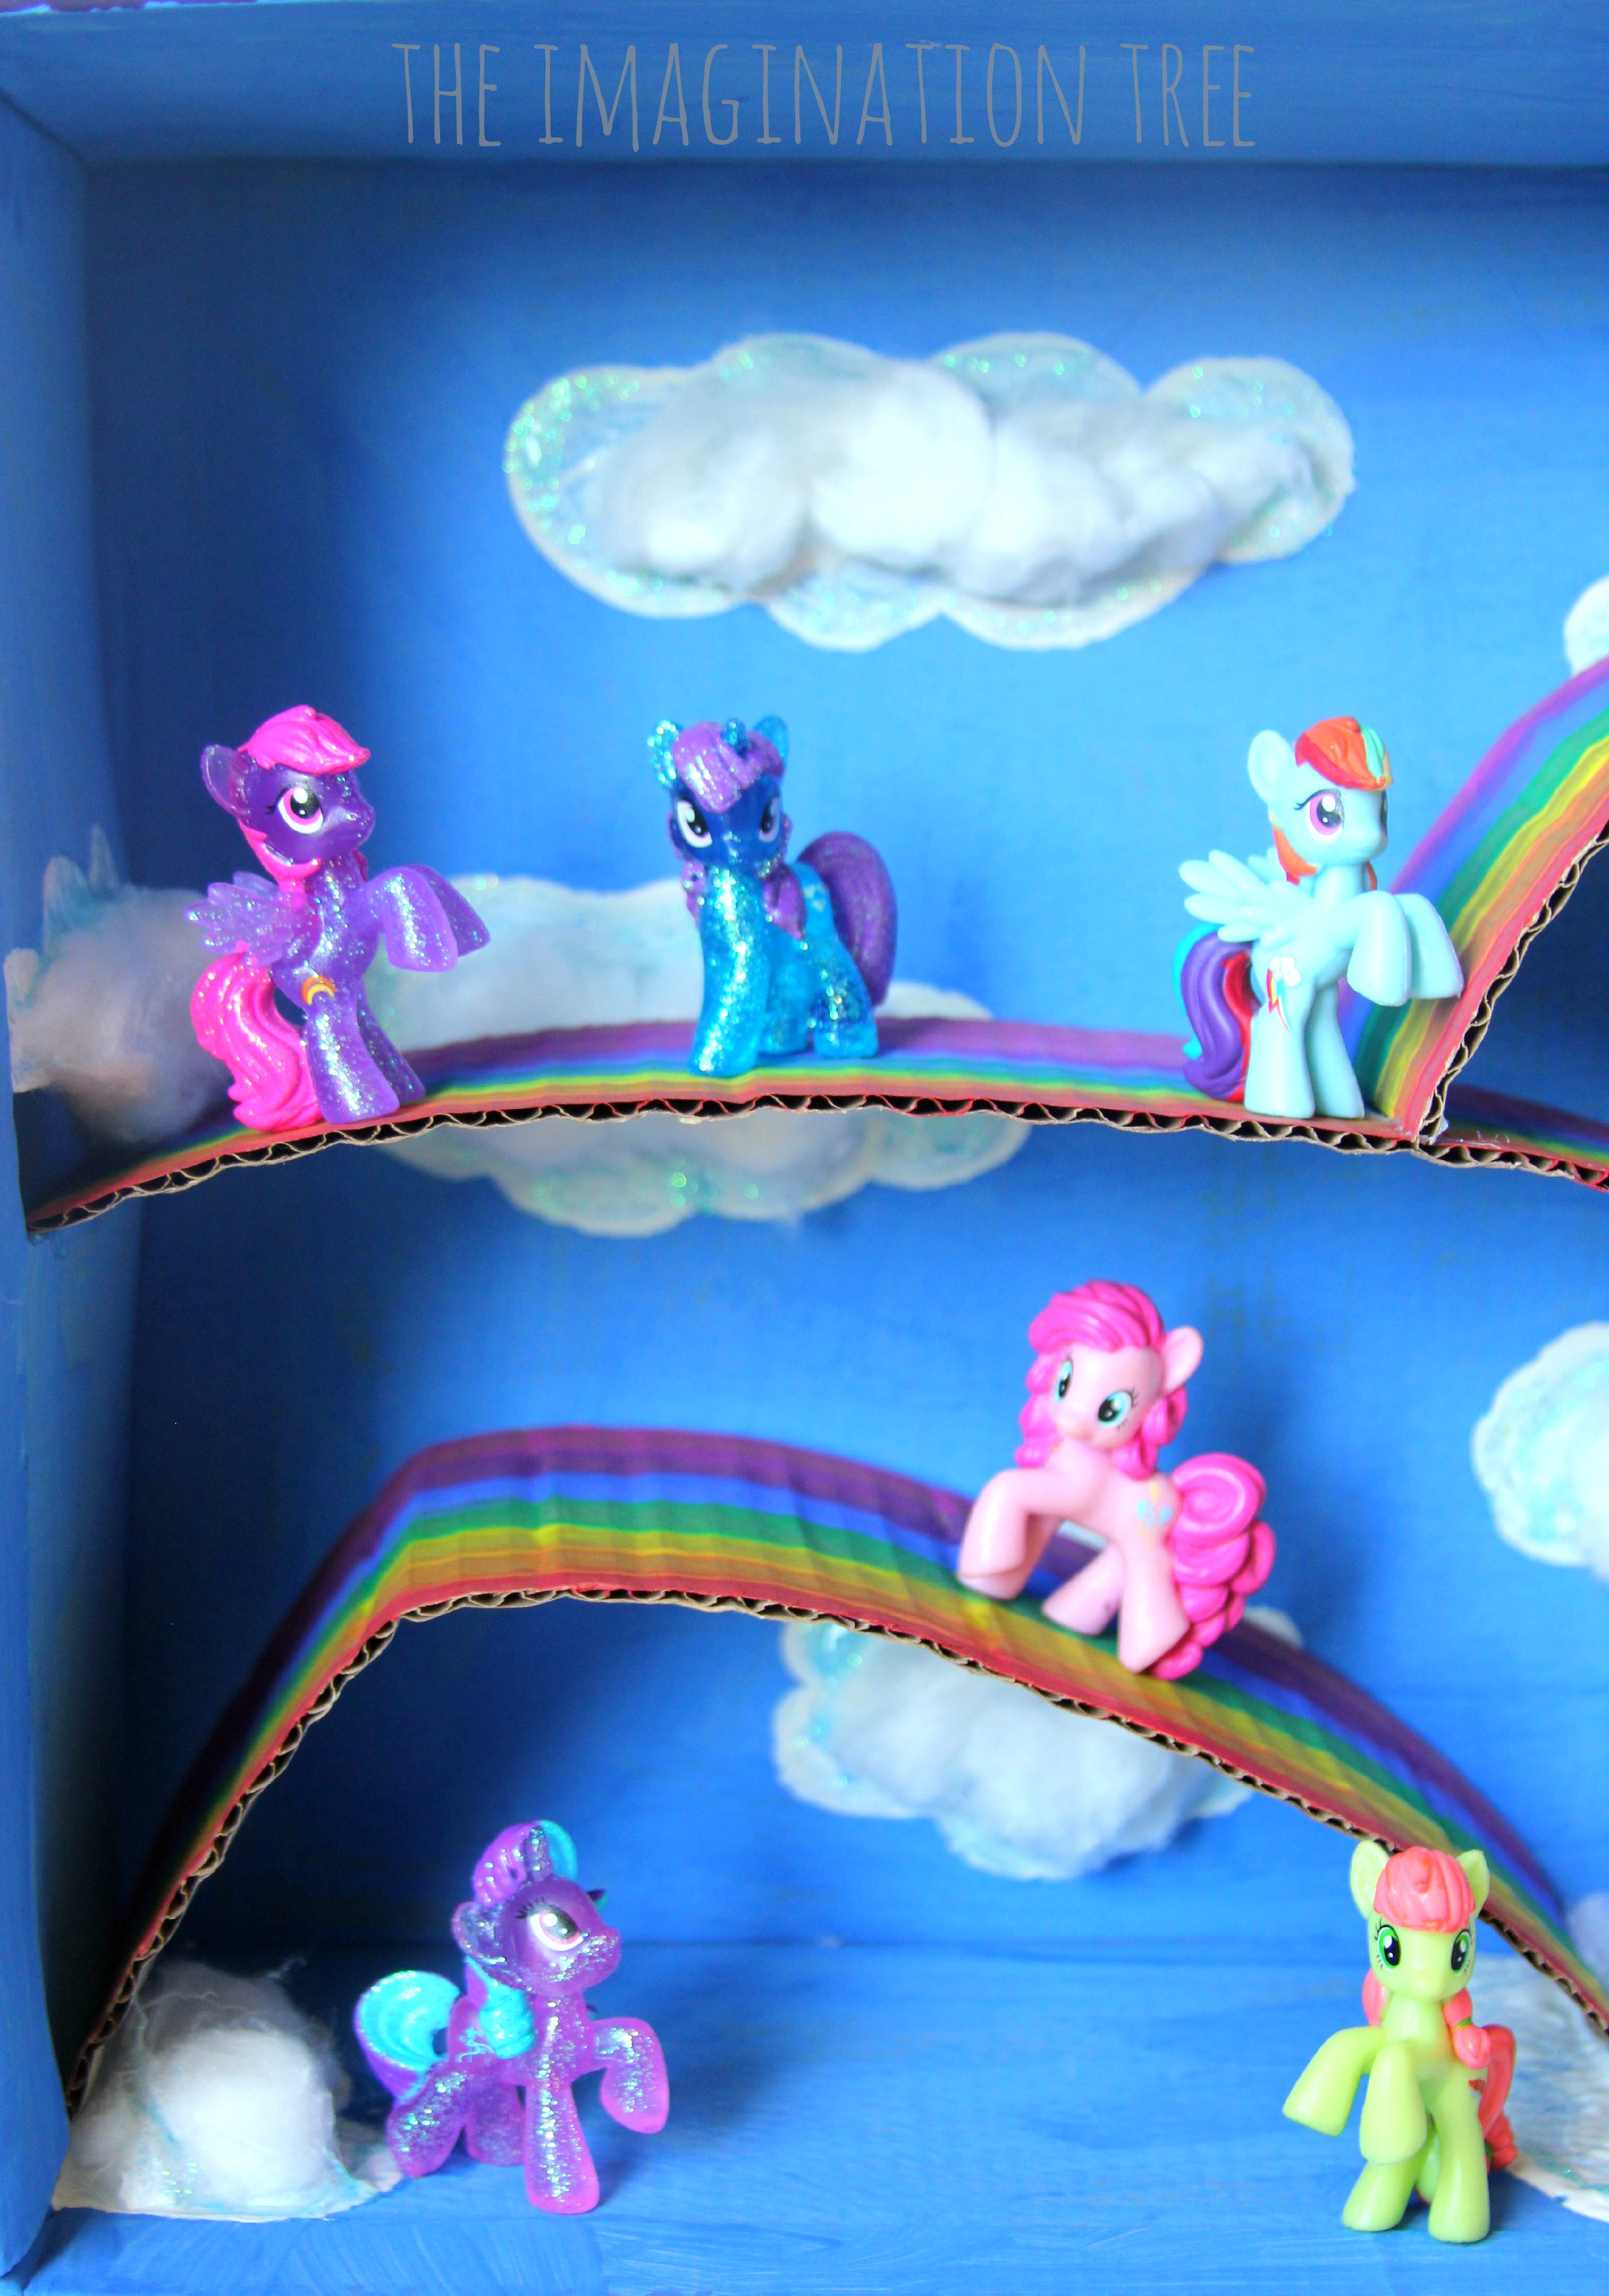 Watch How to Build My Little Pony Characters Inside Minecraft video